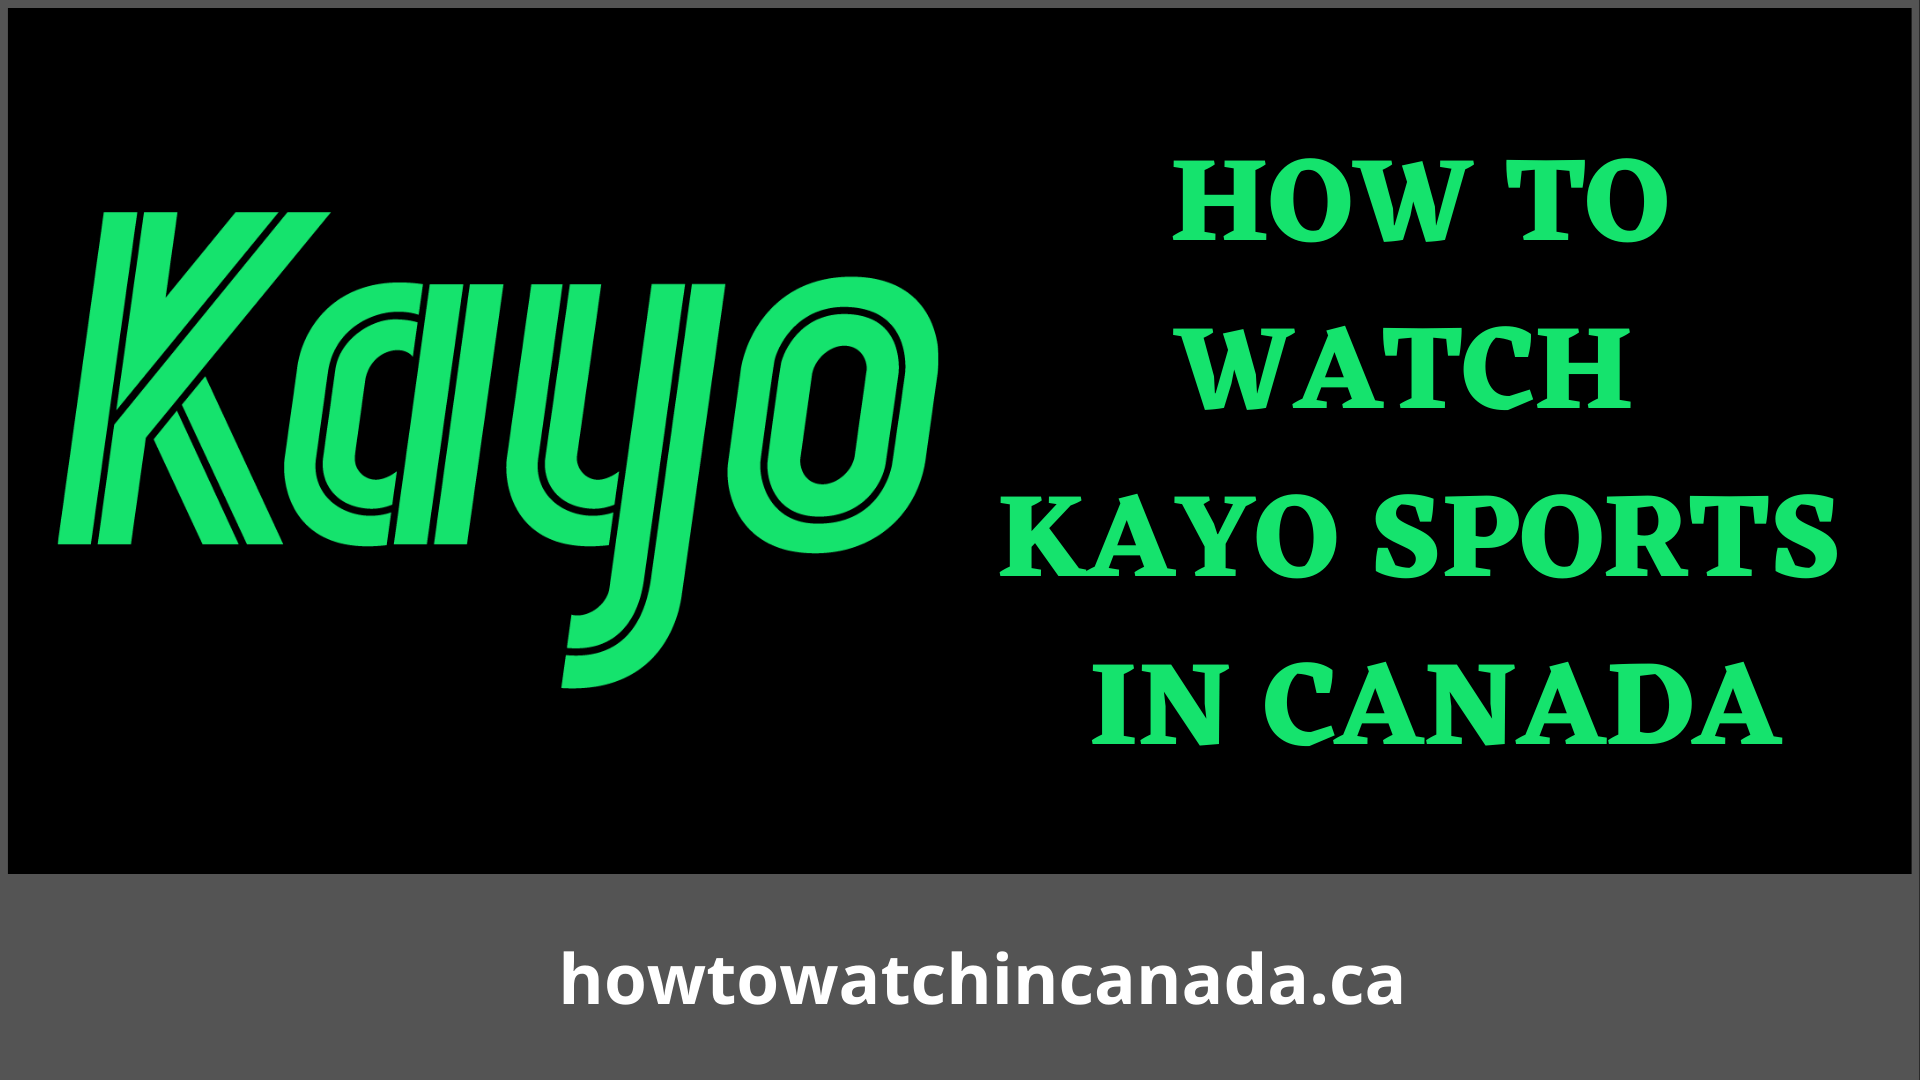 kayo-sports-how-to-watch-in-canada